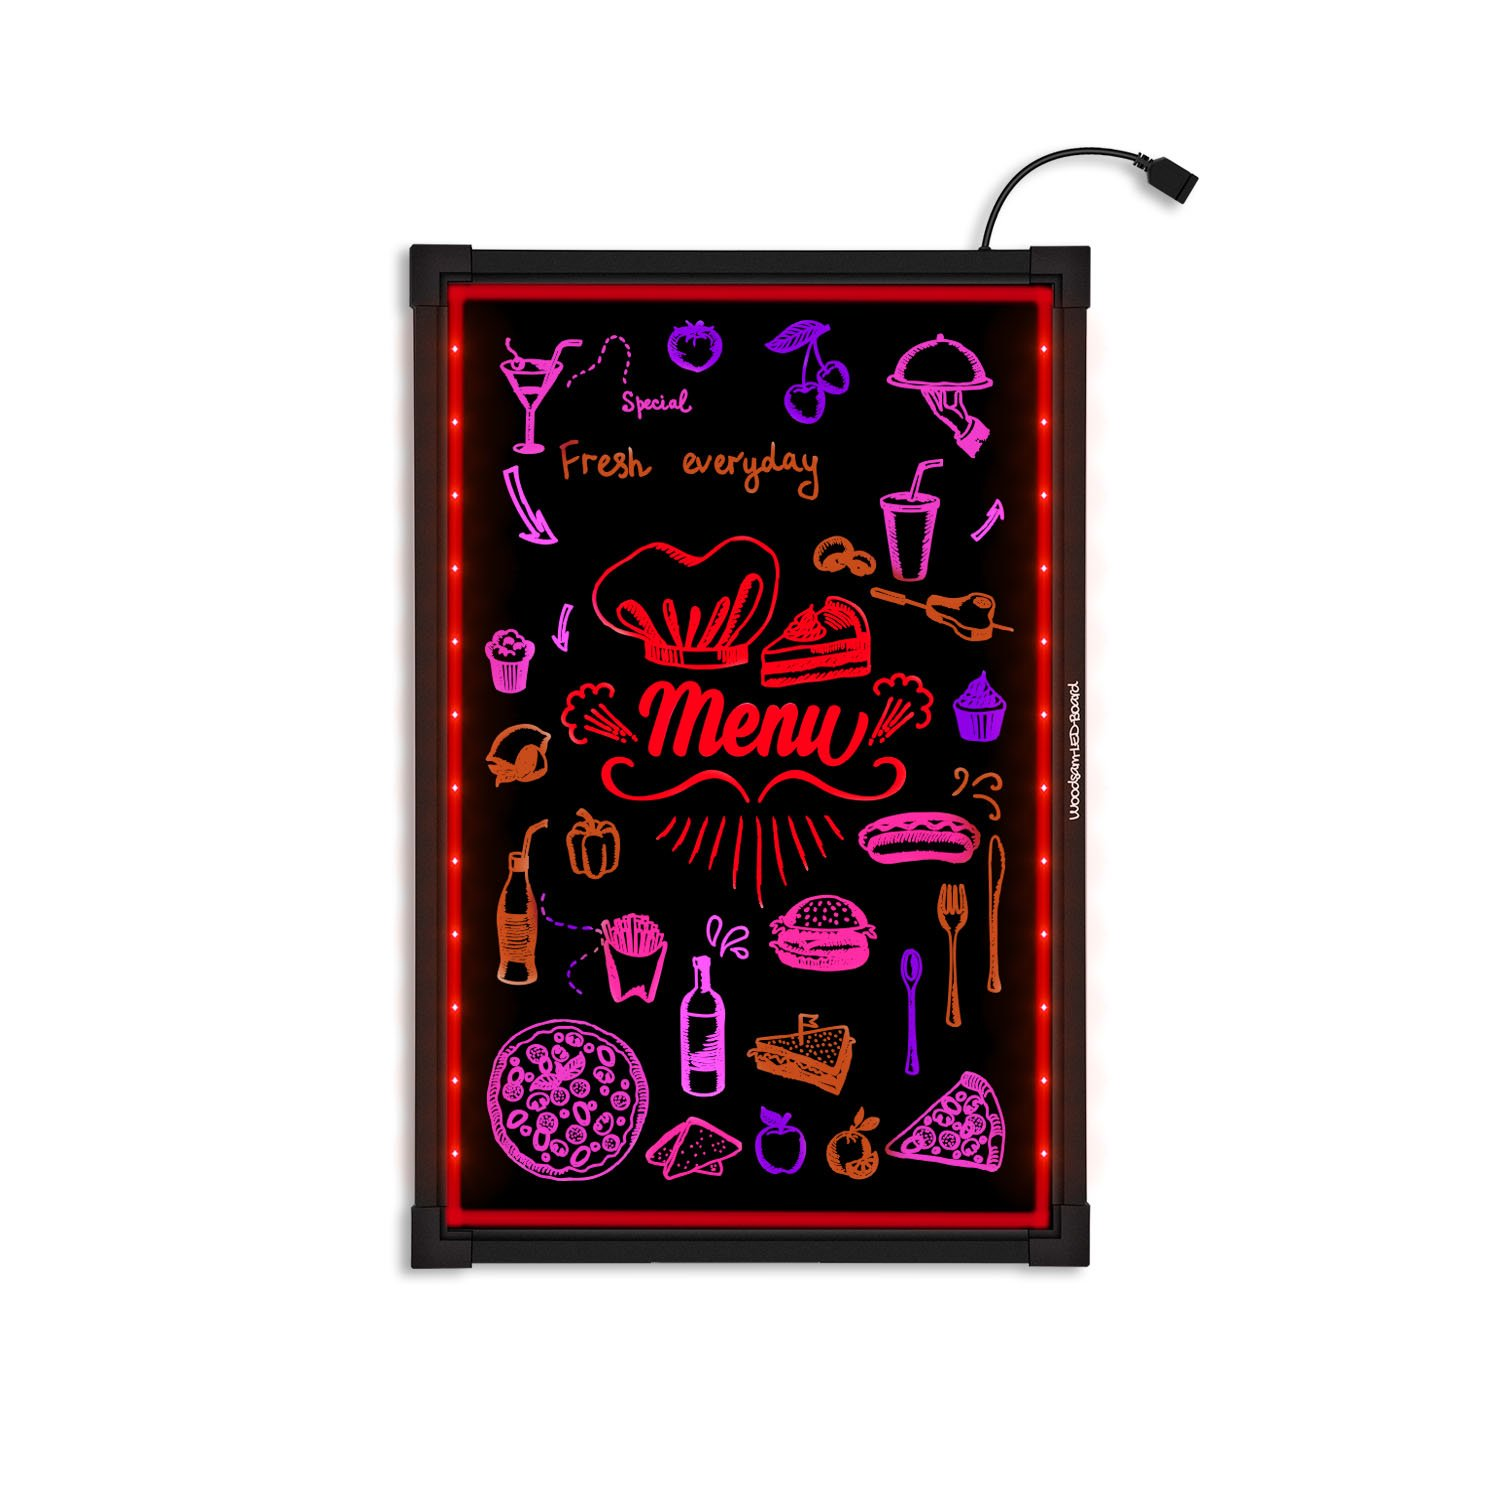 Woodsam LED Message Writing Board - 32''x24'' Flashing Illuminated Erasable Neon Sign With 8 Fluorescent Markers - Perfect For Holiday/Event/Menu Wedding Decoration Promotion Gift